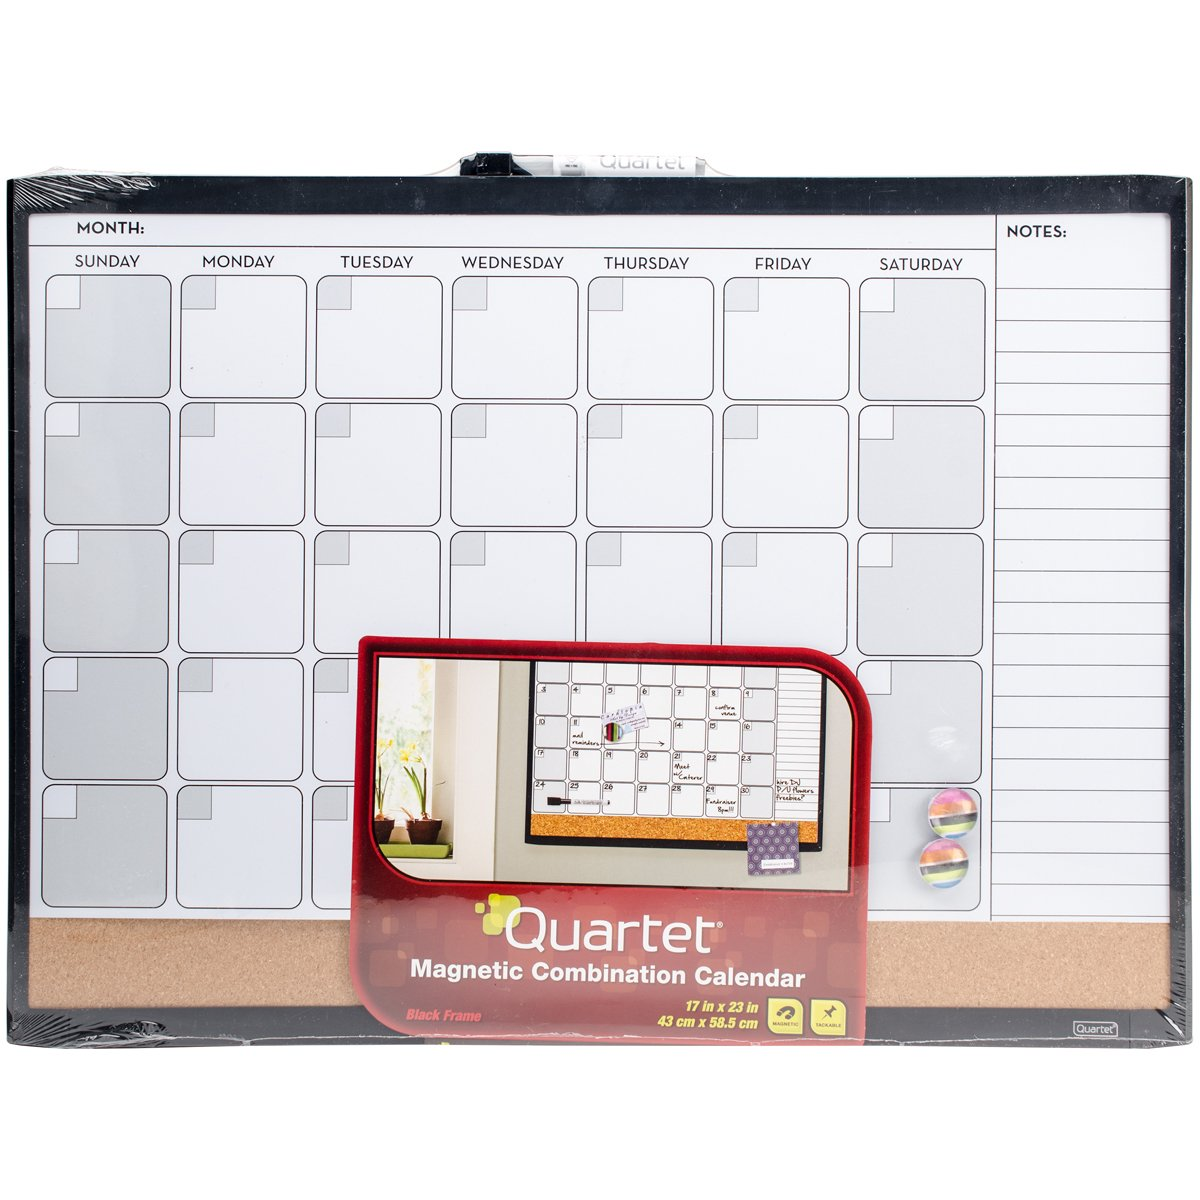 Quartet Dry Erase Board/Cork Board, Calendar Board, Magnetic, 17'' x 23'', 1-Month Design with List, Black Frame (79380-WM)